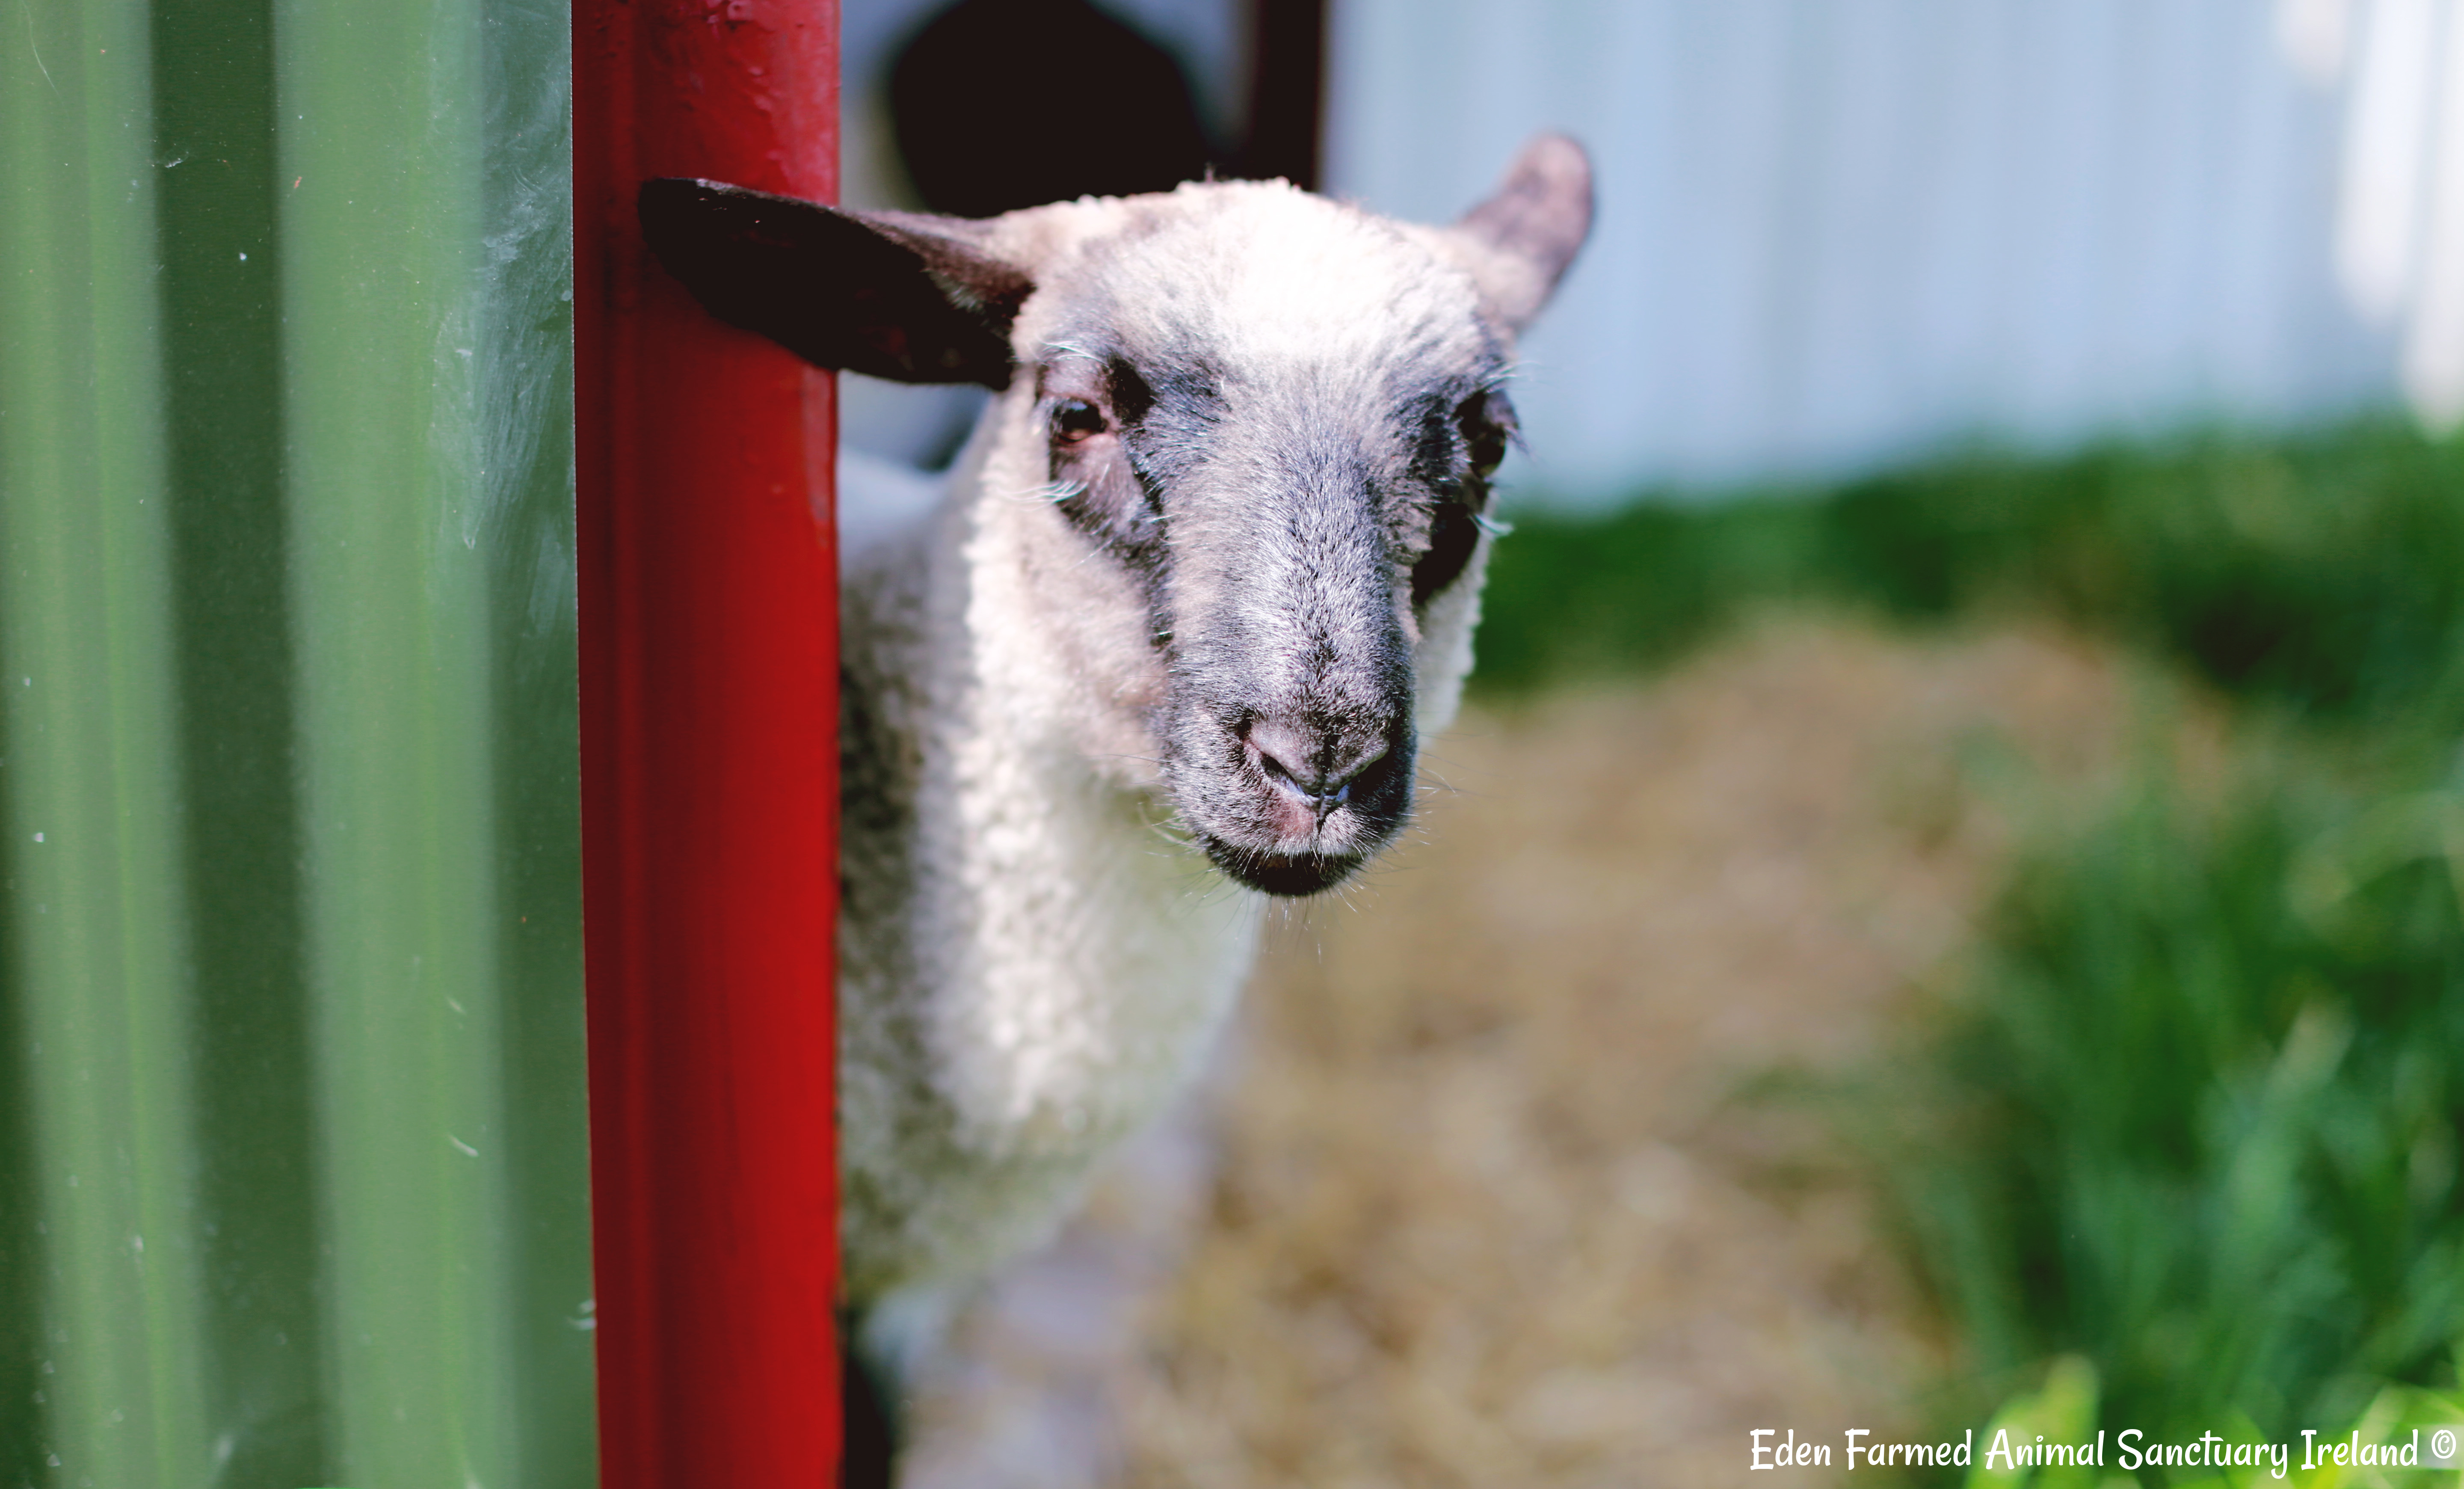 Rescued sheep Annie looking at you at Eden Farmed Animal Sanctuary in Ireland